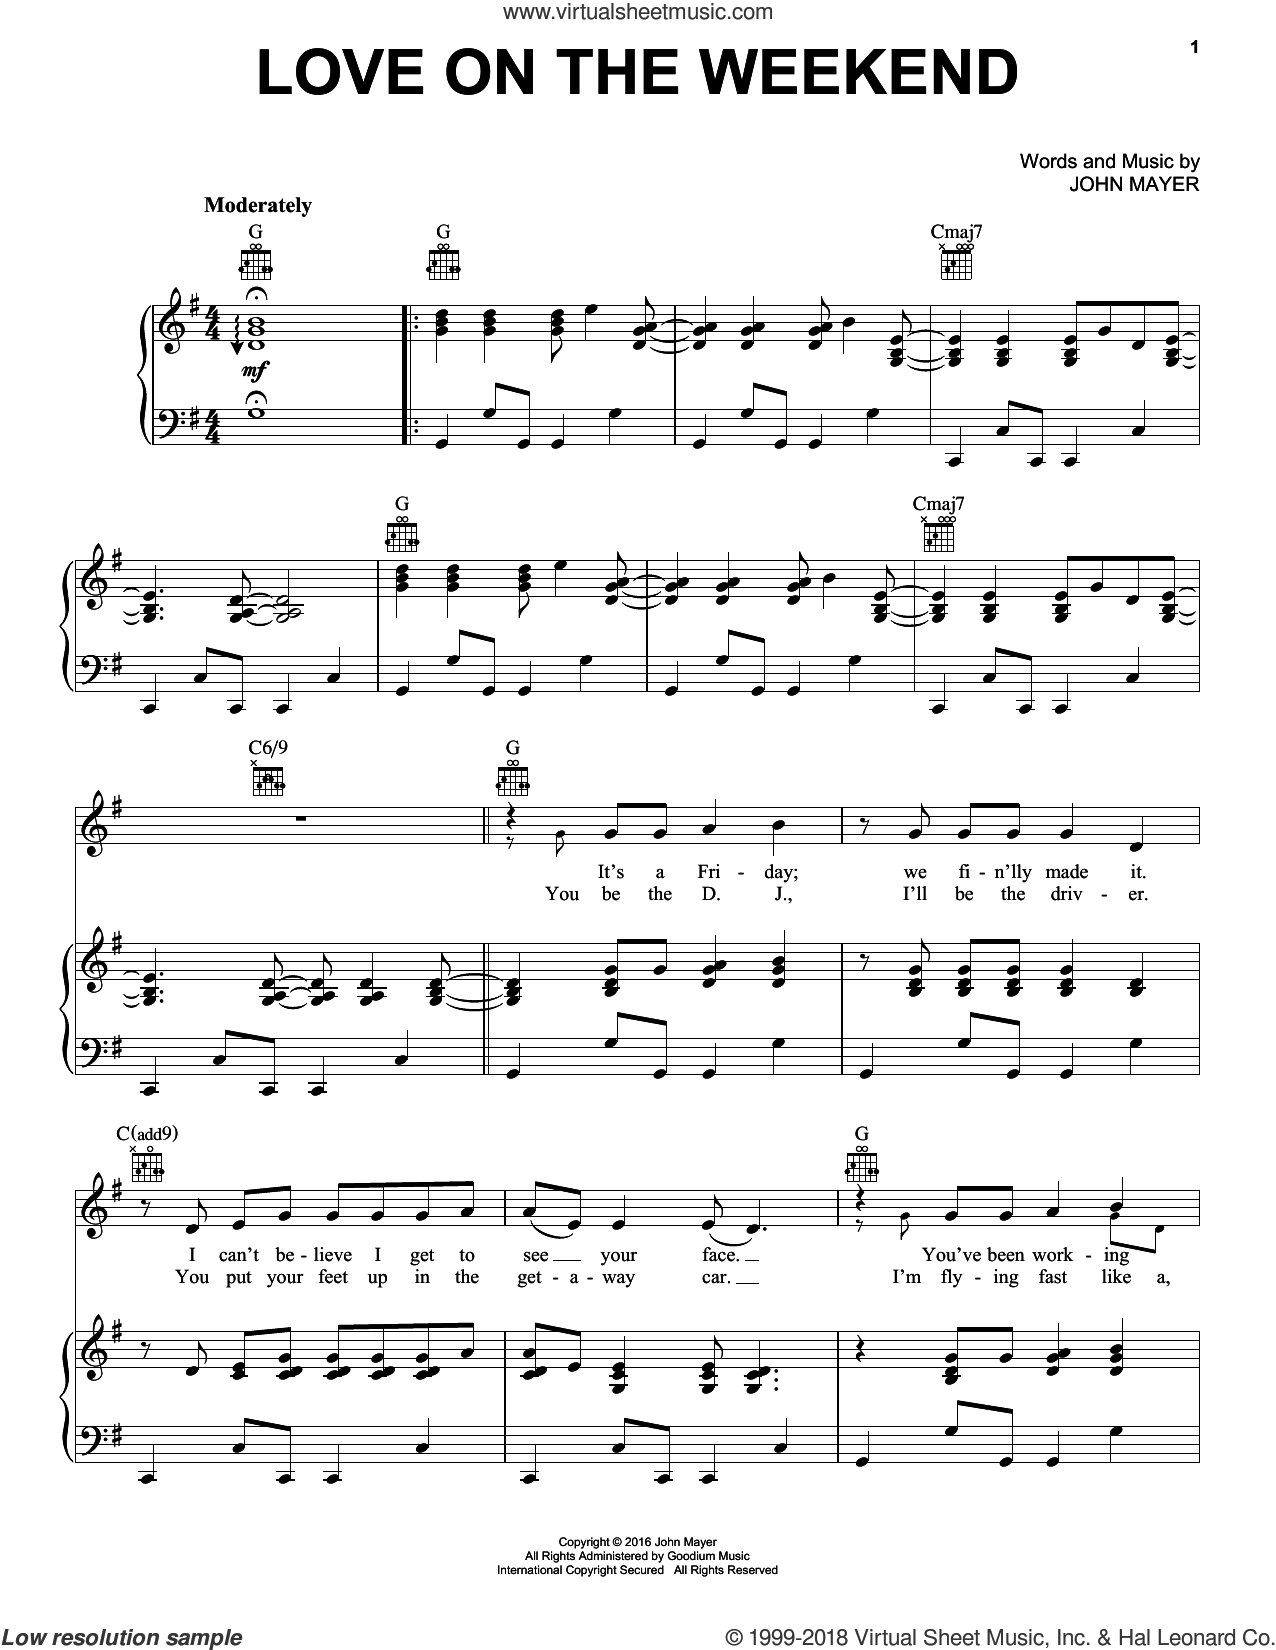 Love On The Weekend sheet music for voice, piano or guitar by John Mayer, intermediate. Score Image Preview.